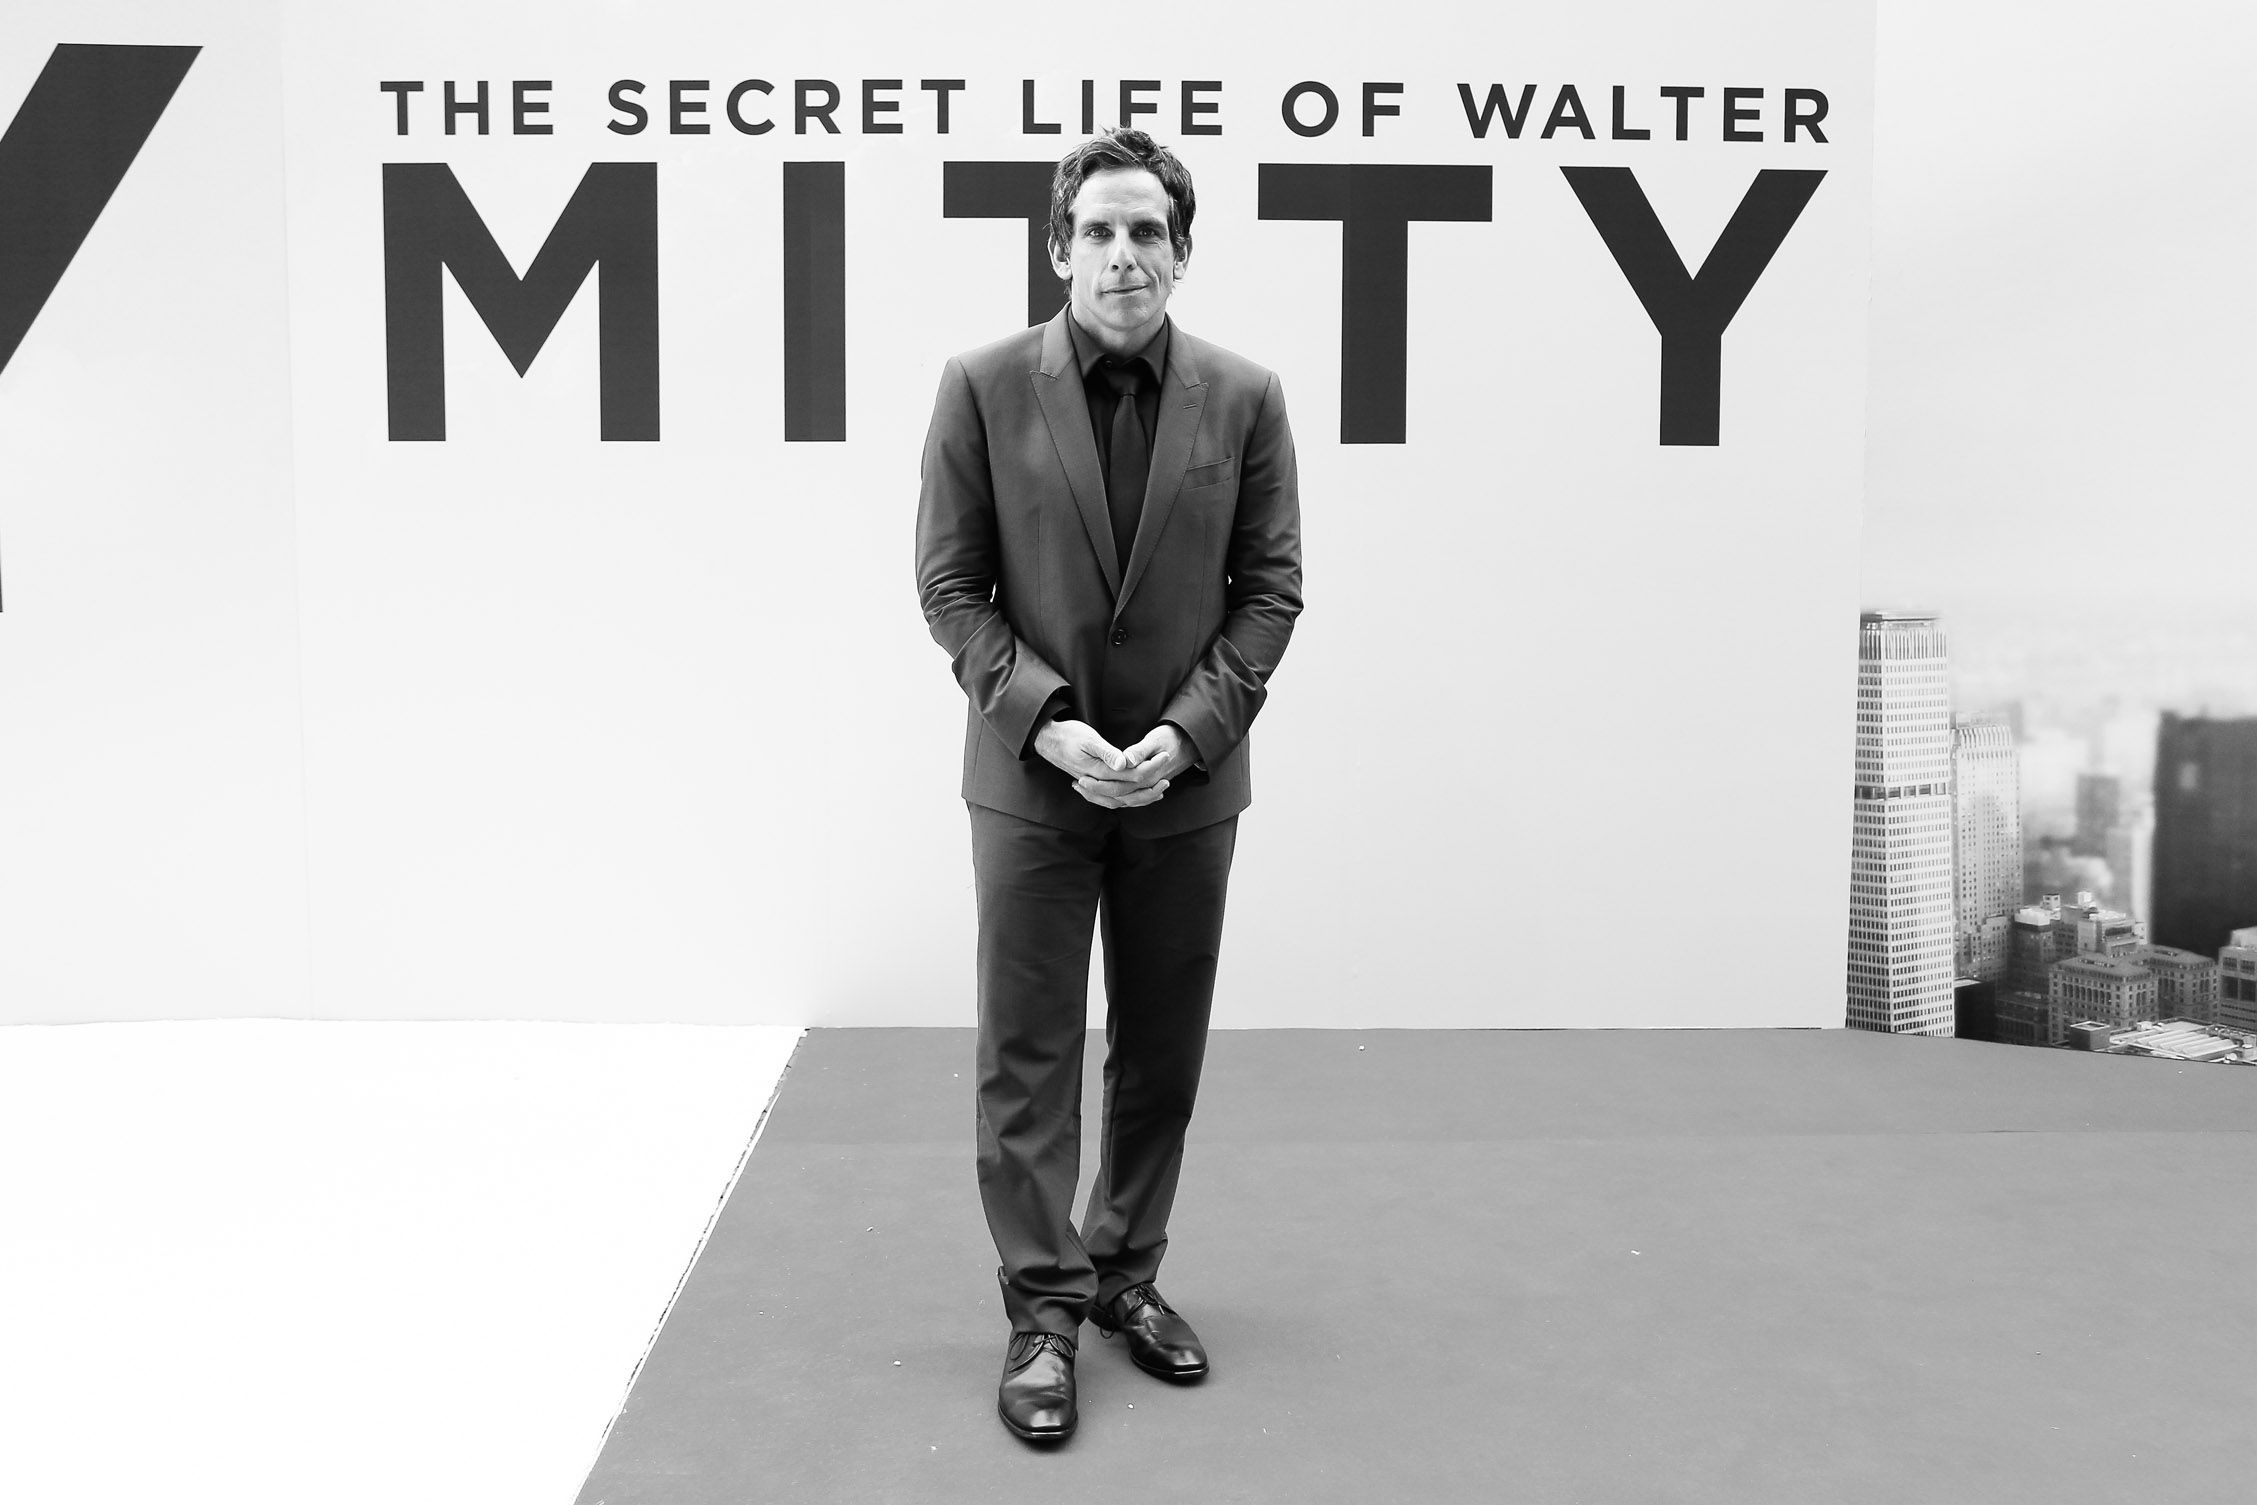 best images about the secret life of walter mitty on 17 best images about the secret life of walter mitty 2013 the secret james thurber and secret life